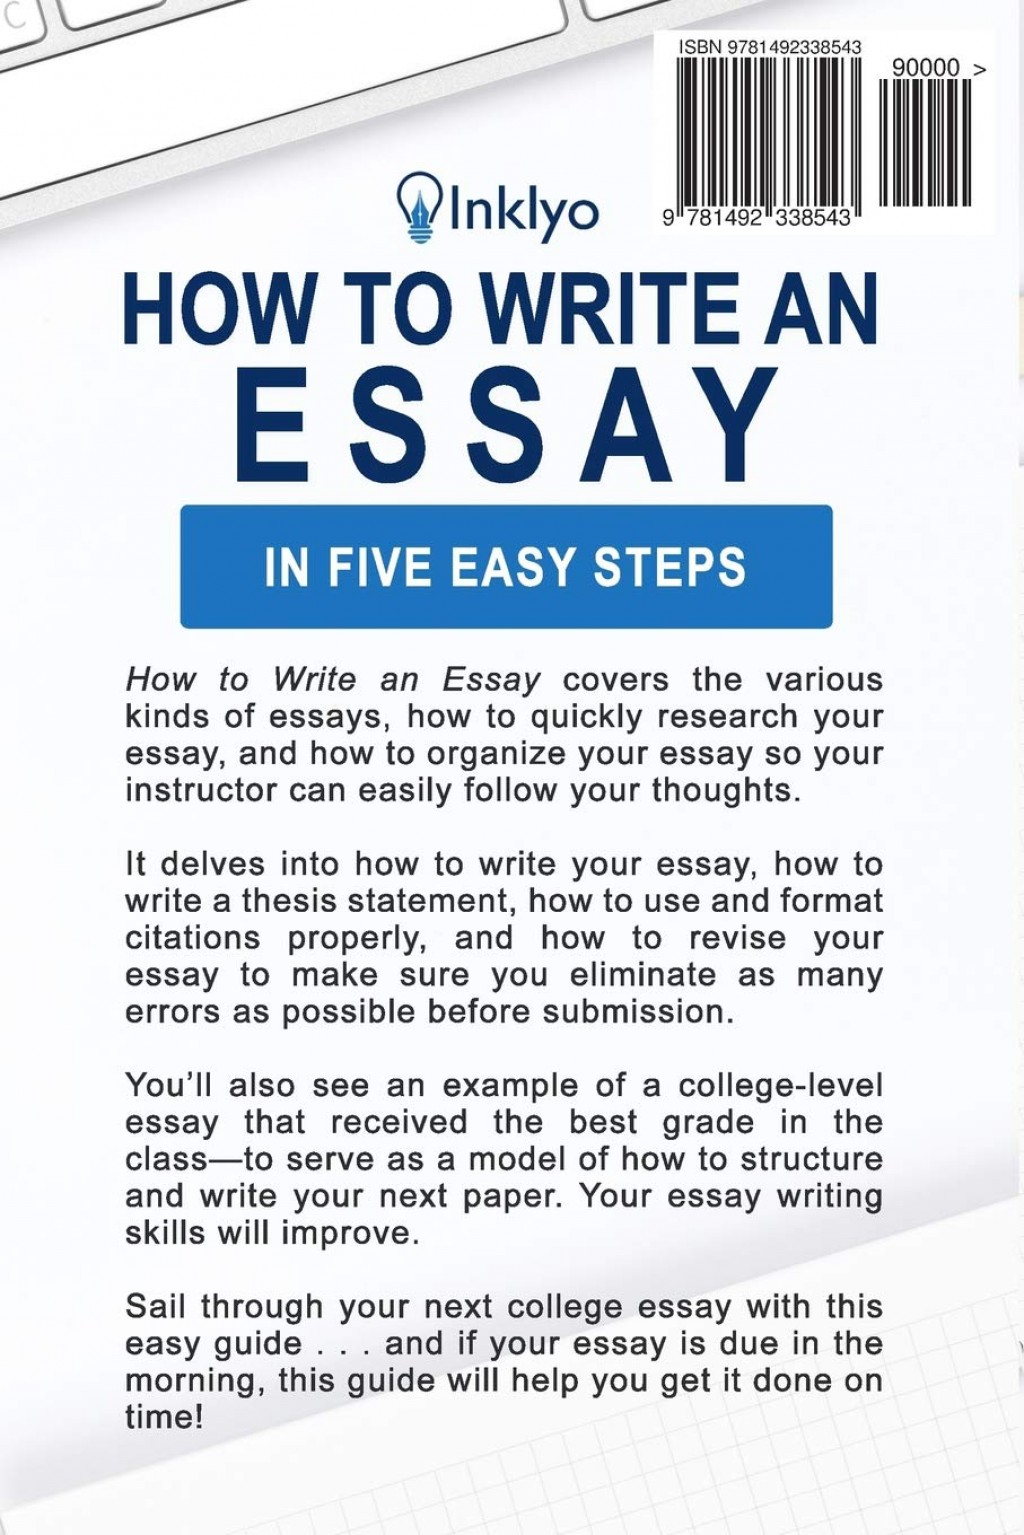 005 Easy Essay Writing Example Marvelous Examples Ielts Tips Task 2 Topics Large